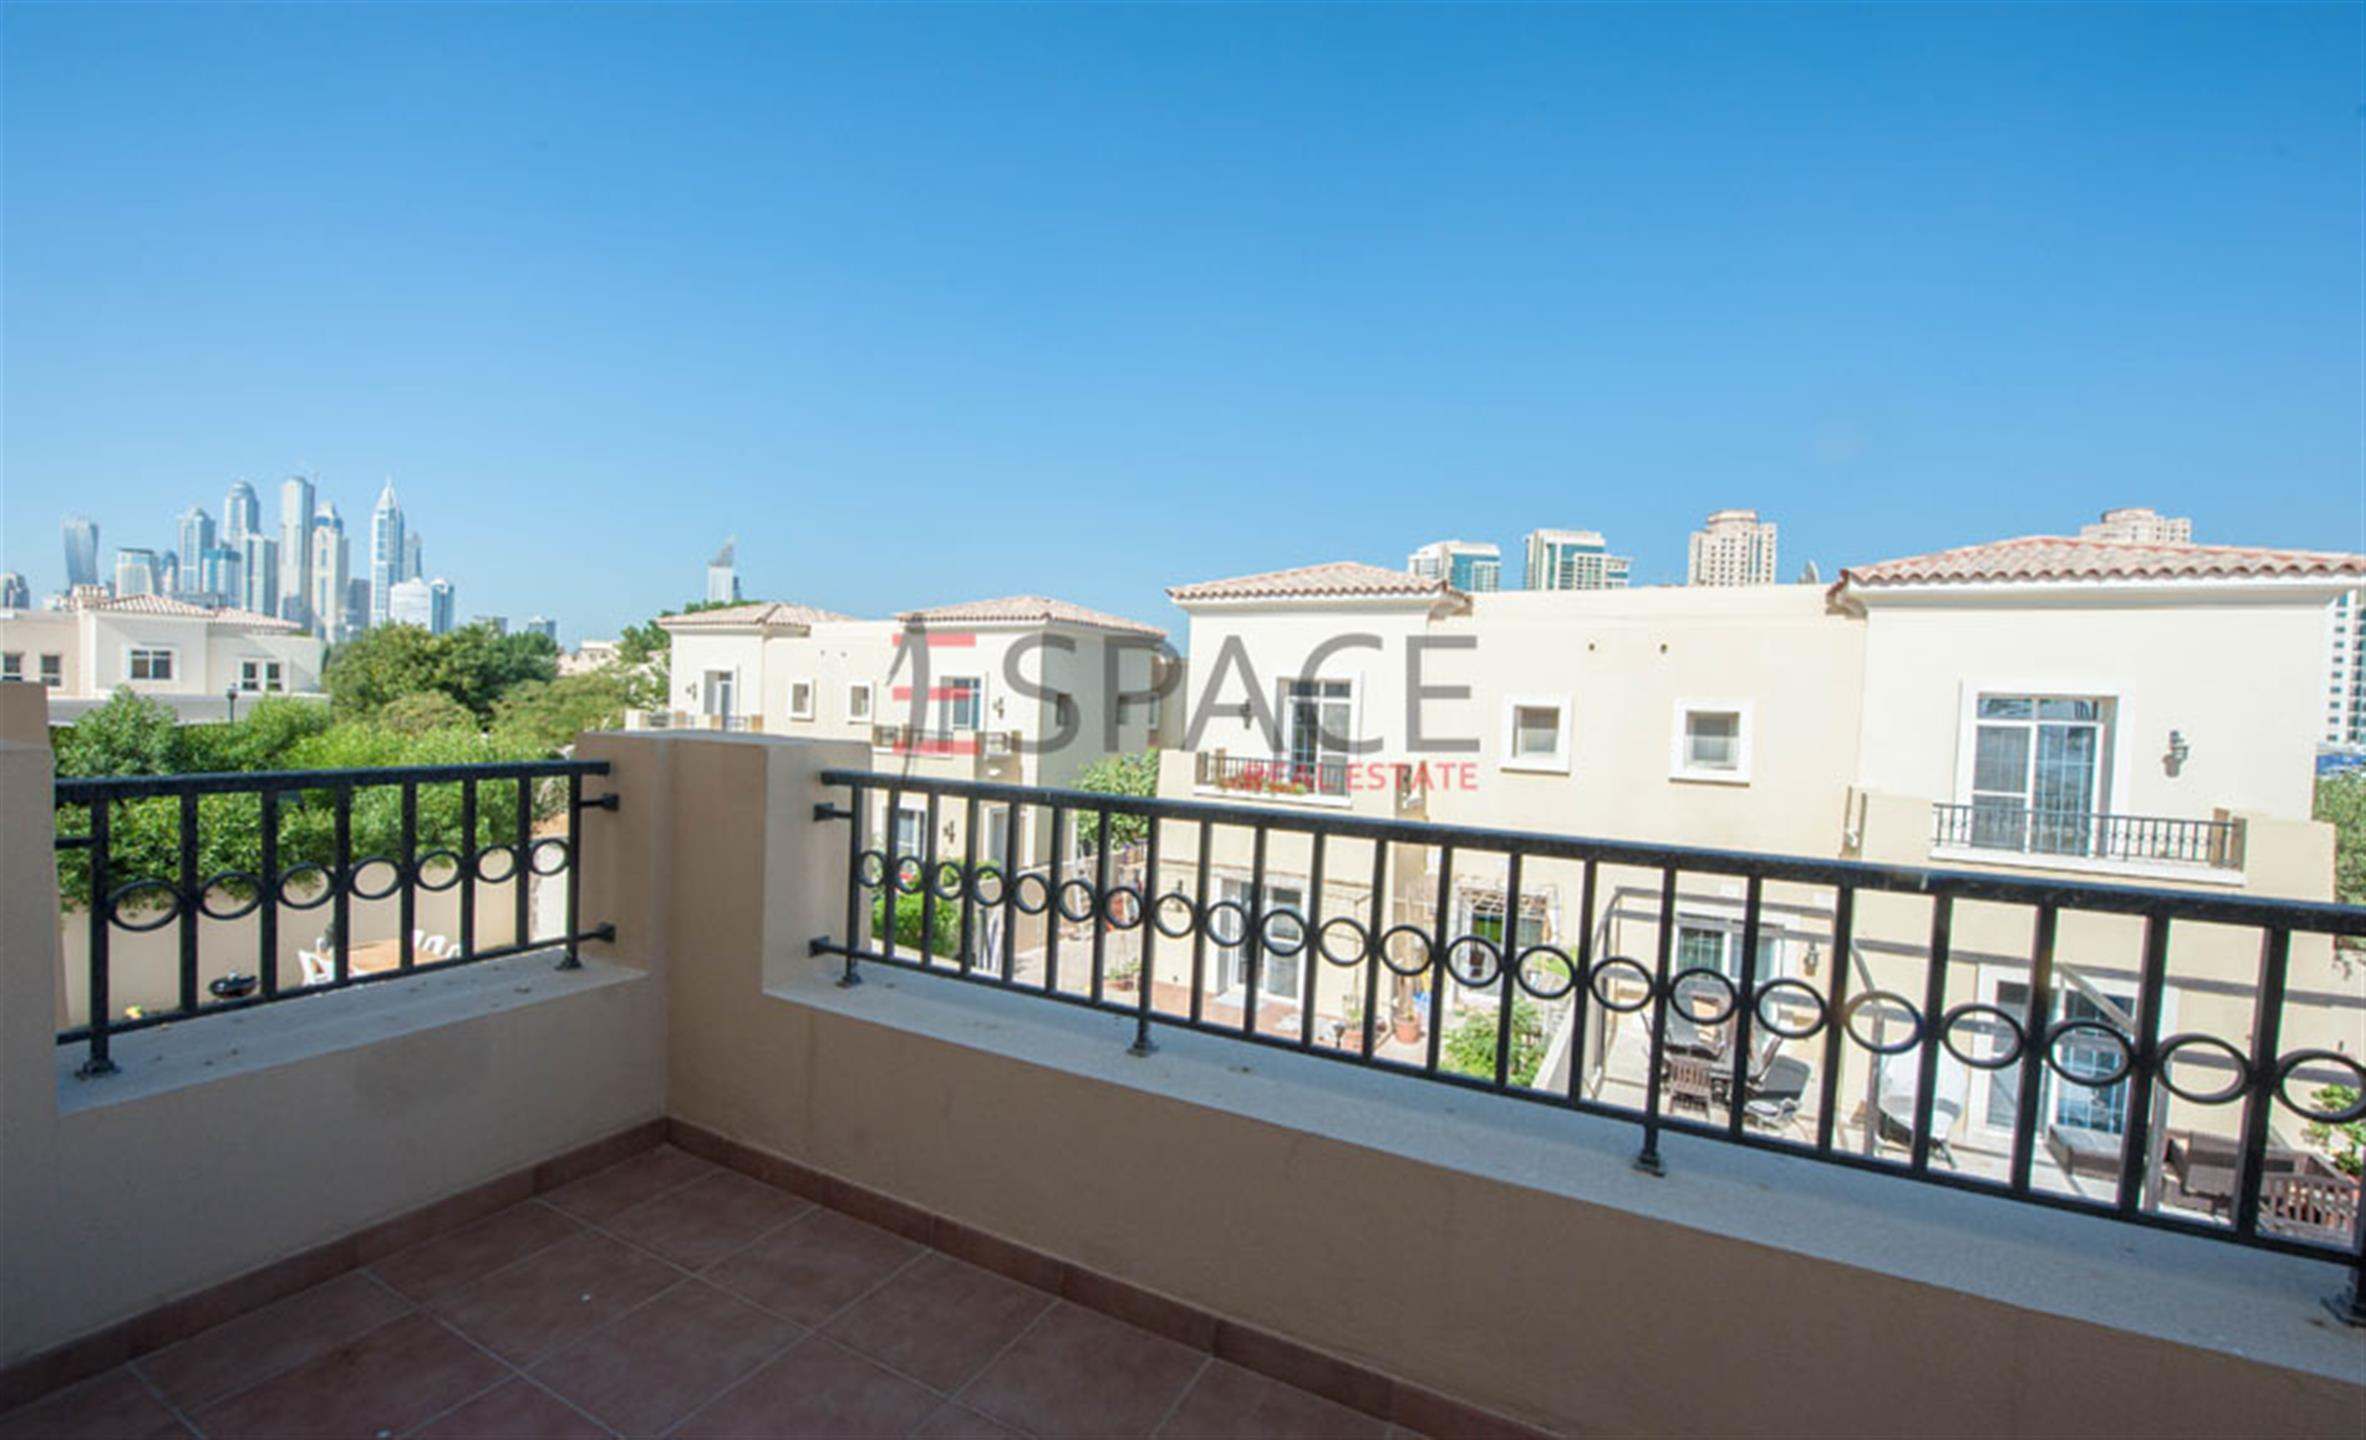 The Lakes - Ghadeer - Villa - Landscaped Garden - 3 Bedrooms - 2436 sqf